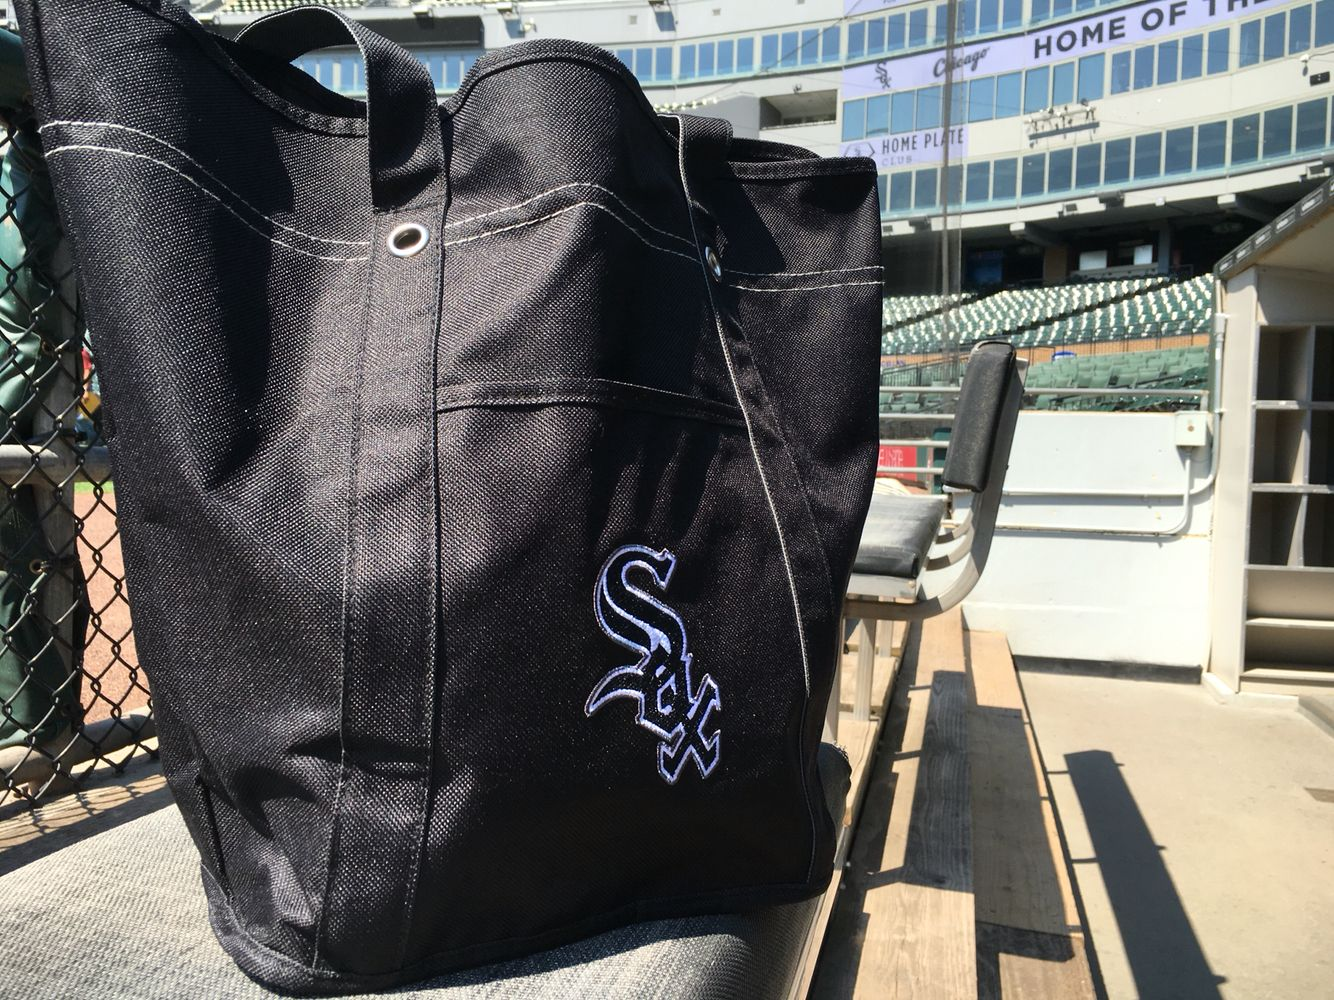 Ladies Night at U.S. Cellular Field will be held on Friday, August 5th when the White Sox take on the Baltimore Orioles. Round up your girlfriends and enjoy a night of baseball, relaxation, and a spectacular postgame fireworks show!  whitesox.com/ladies